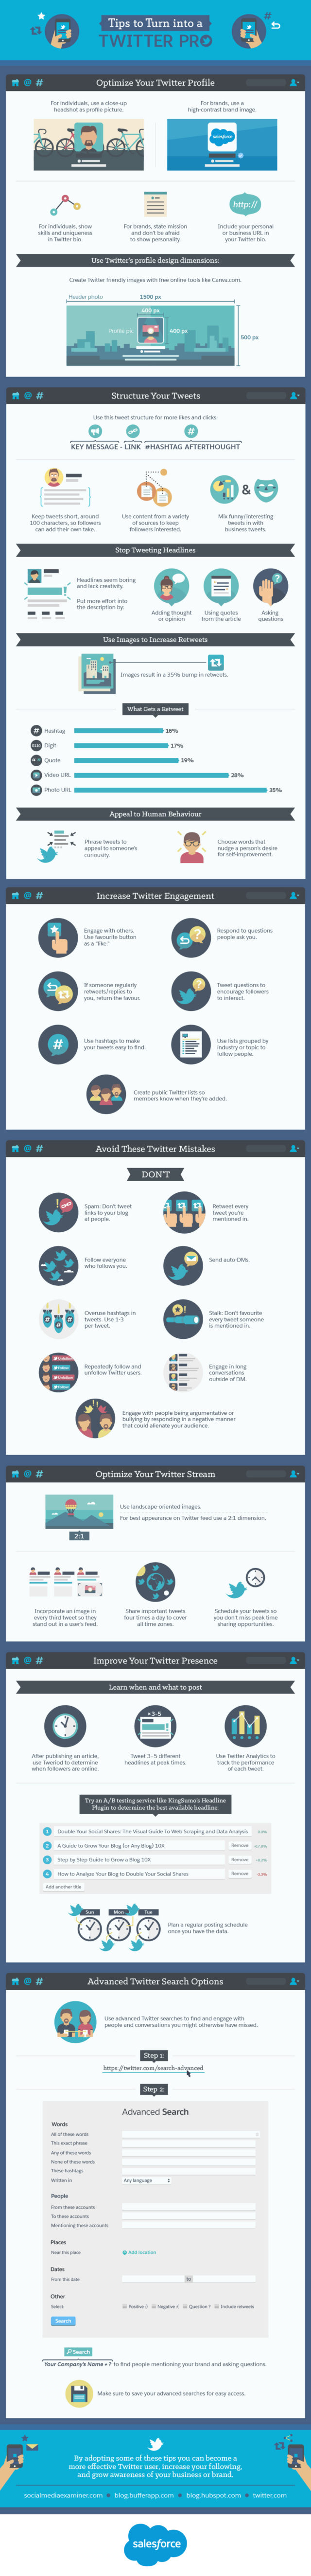 twitter-infographic-salesforce